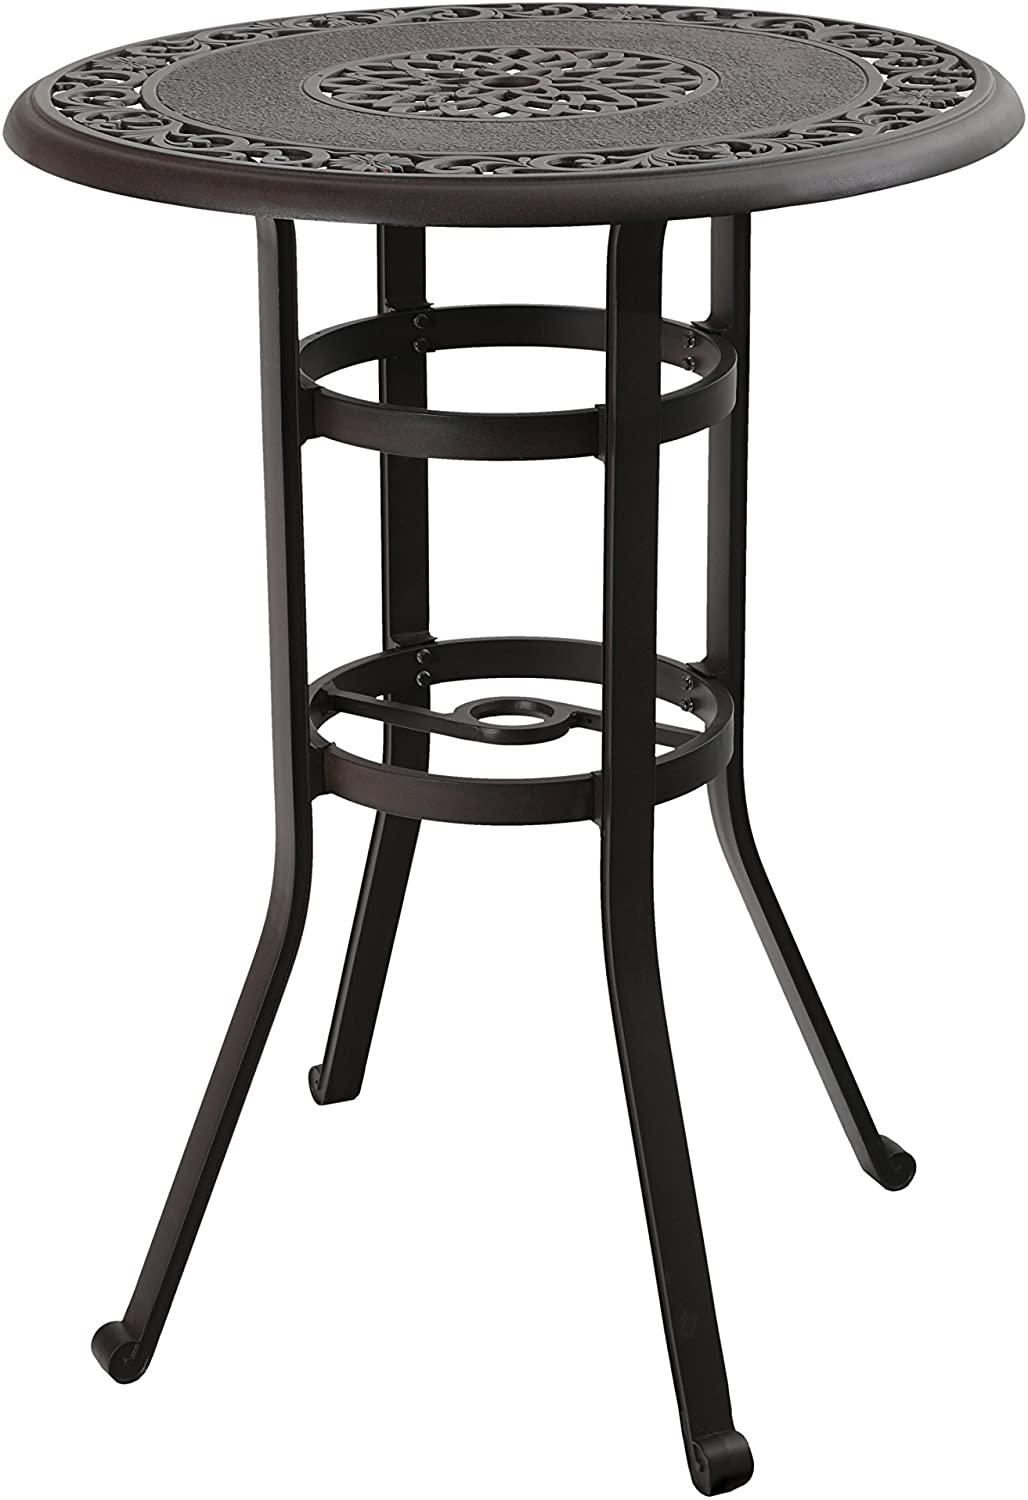 Phi Villa 32 Cast Aluminum Patio Bar Table 41 Height High Top Outdoor Table Pub Height Bistro Round Table For Paito Lawn Garden Kitchen Dining